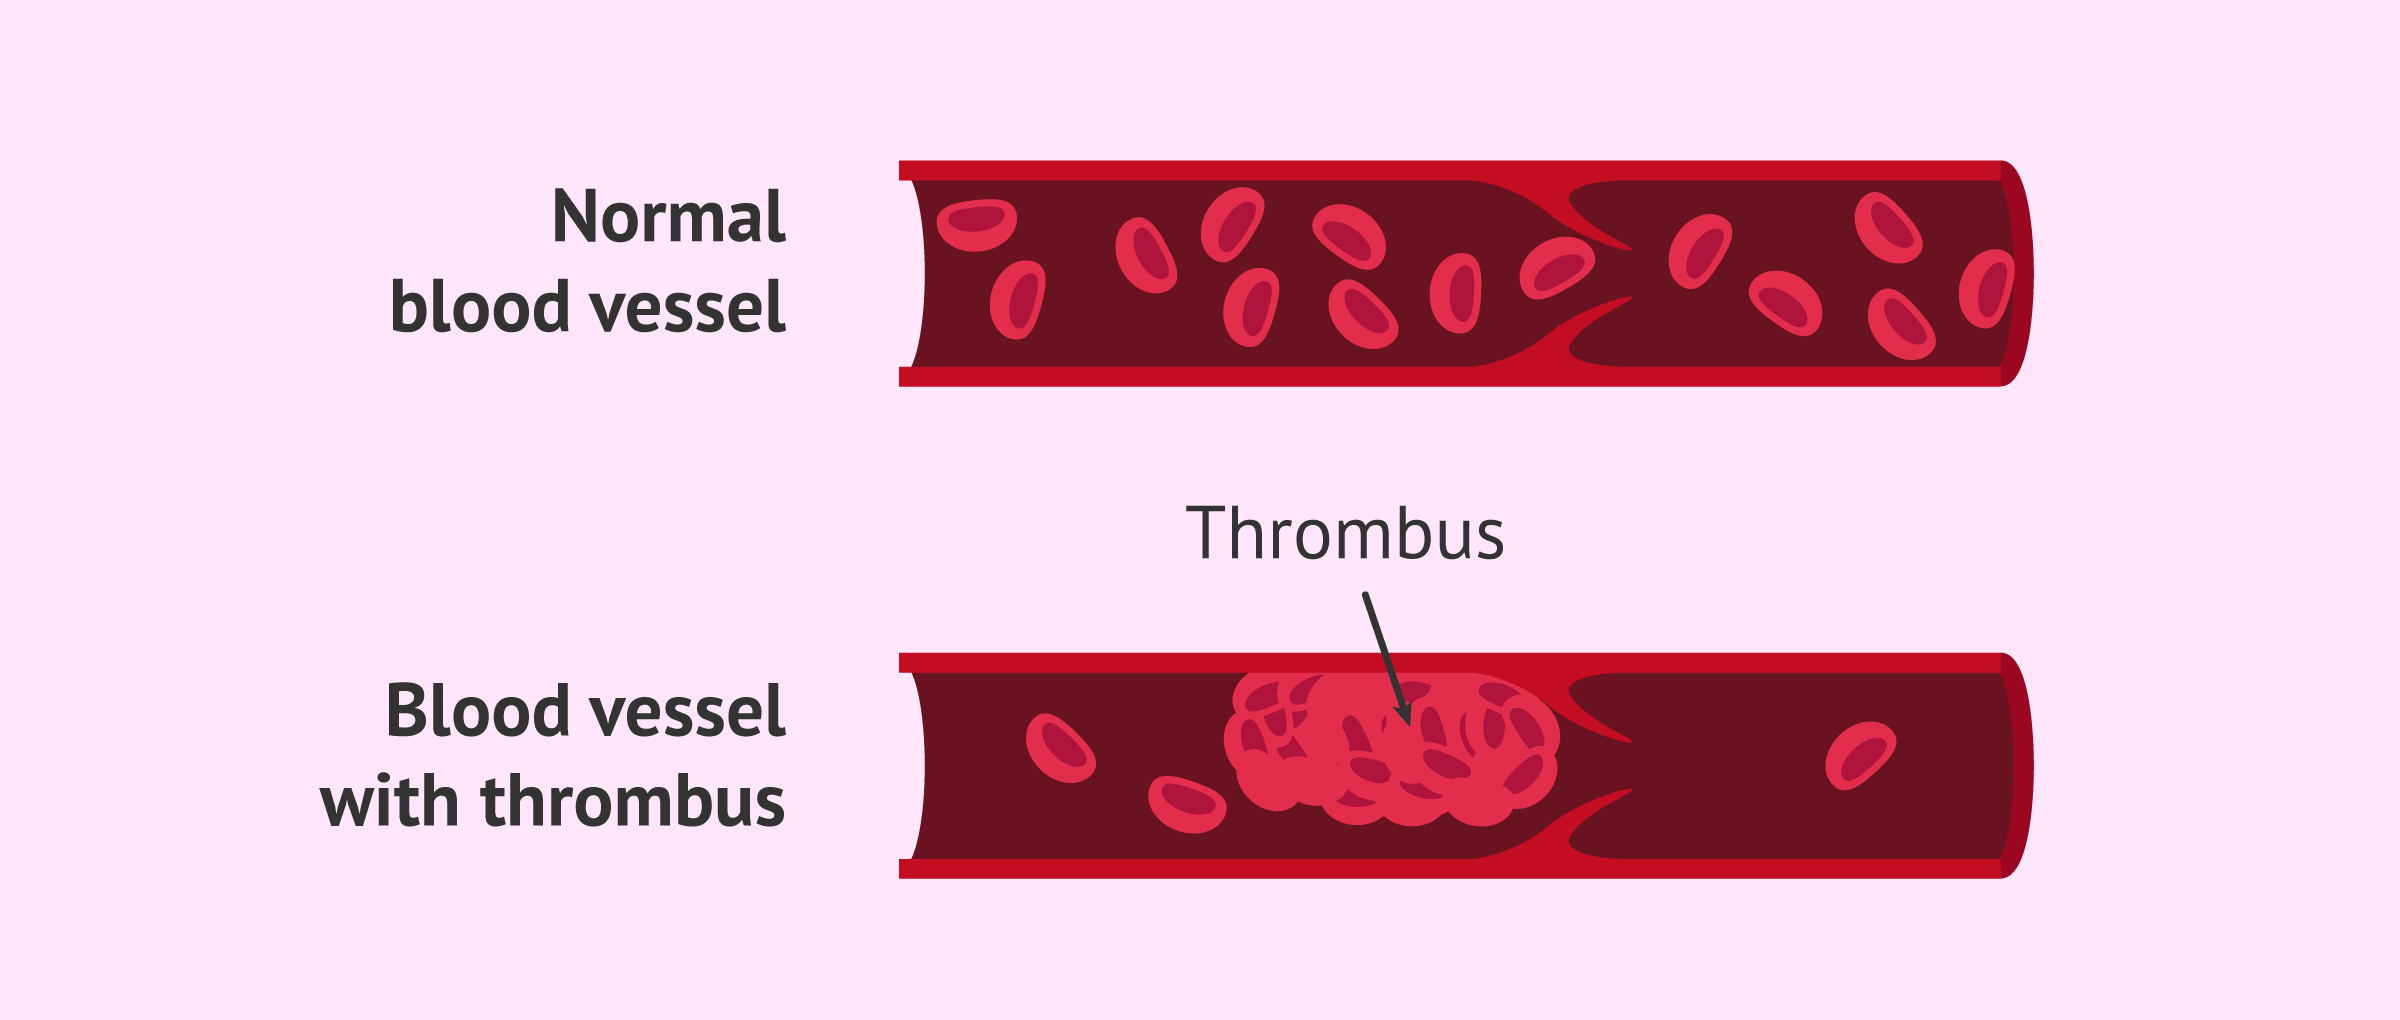 Thrombophilia in pregnancy